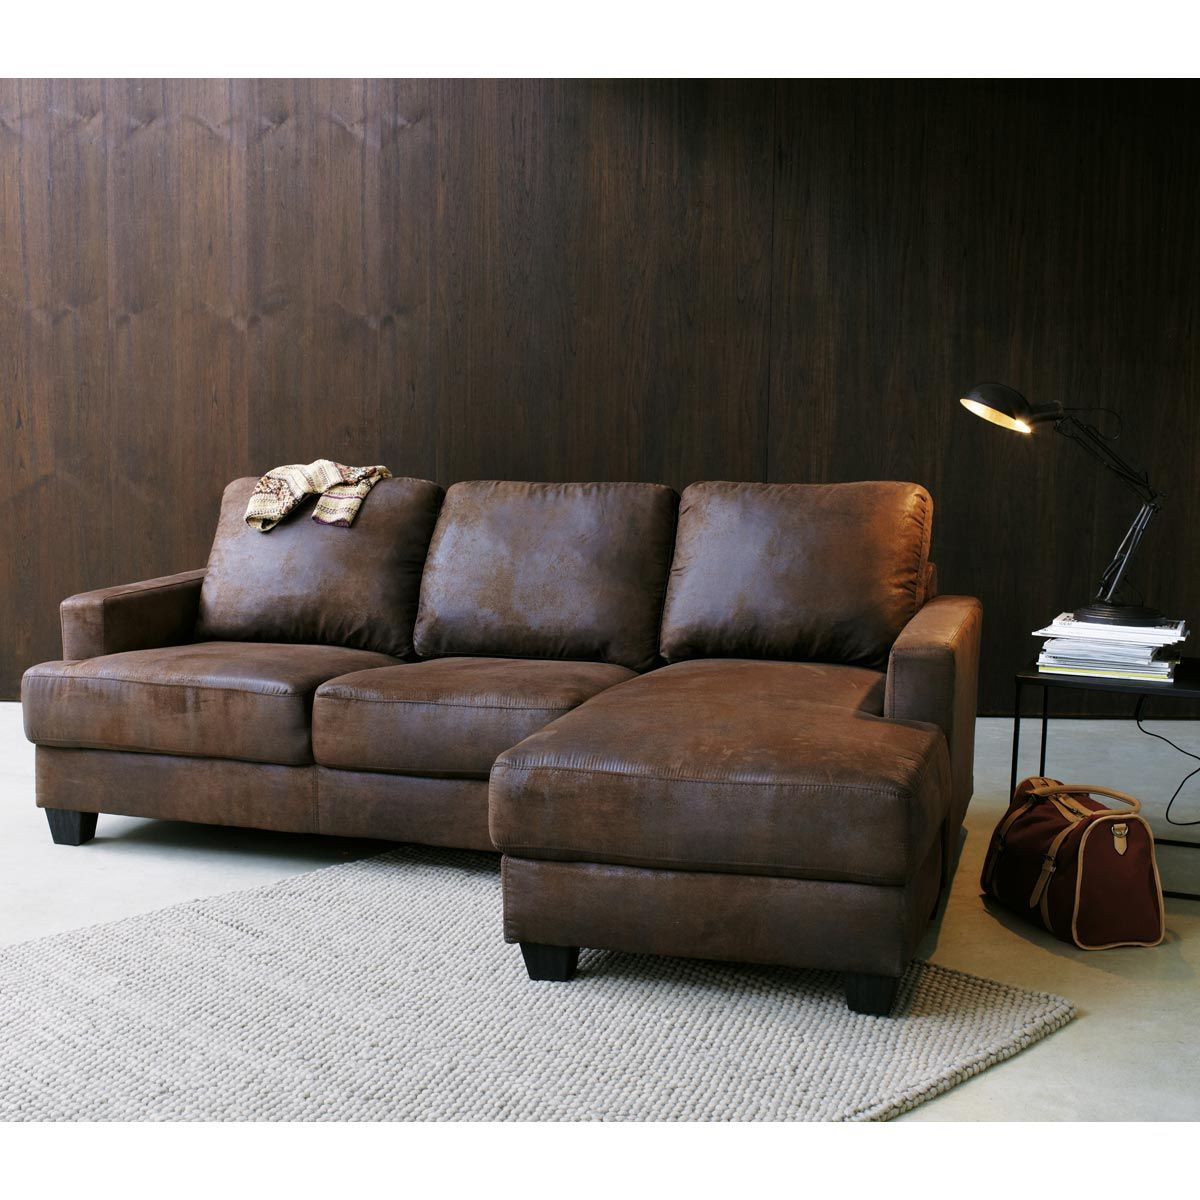 Canape Angle Fixe Canapé Angle 3 4 Places Fixe Marron Philadelphie Furniture